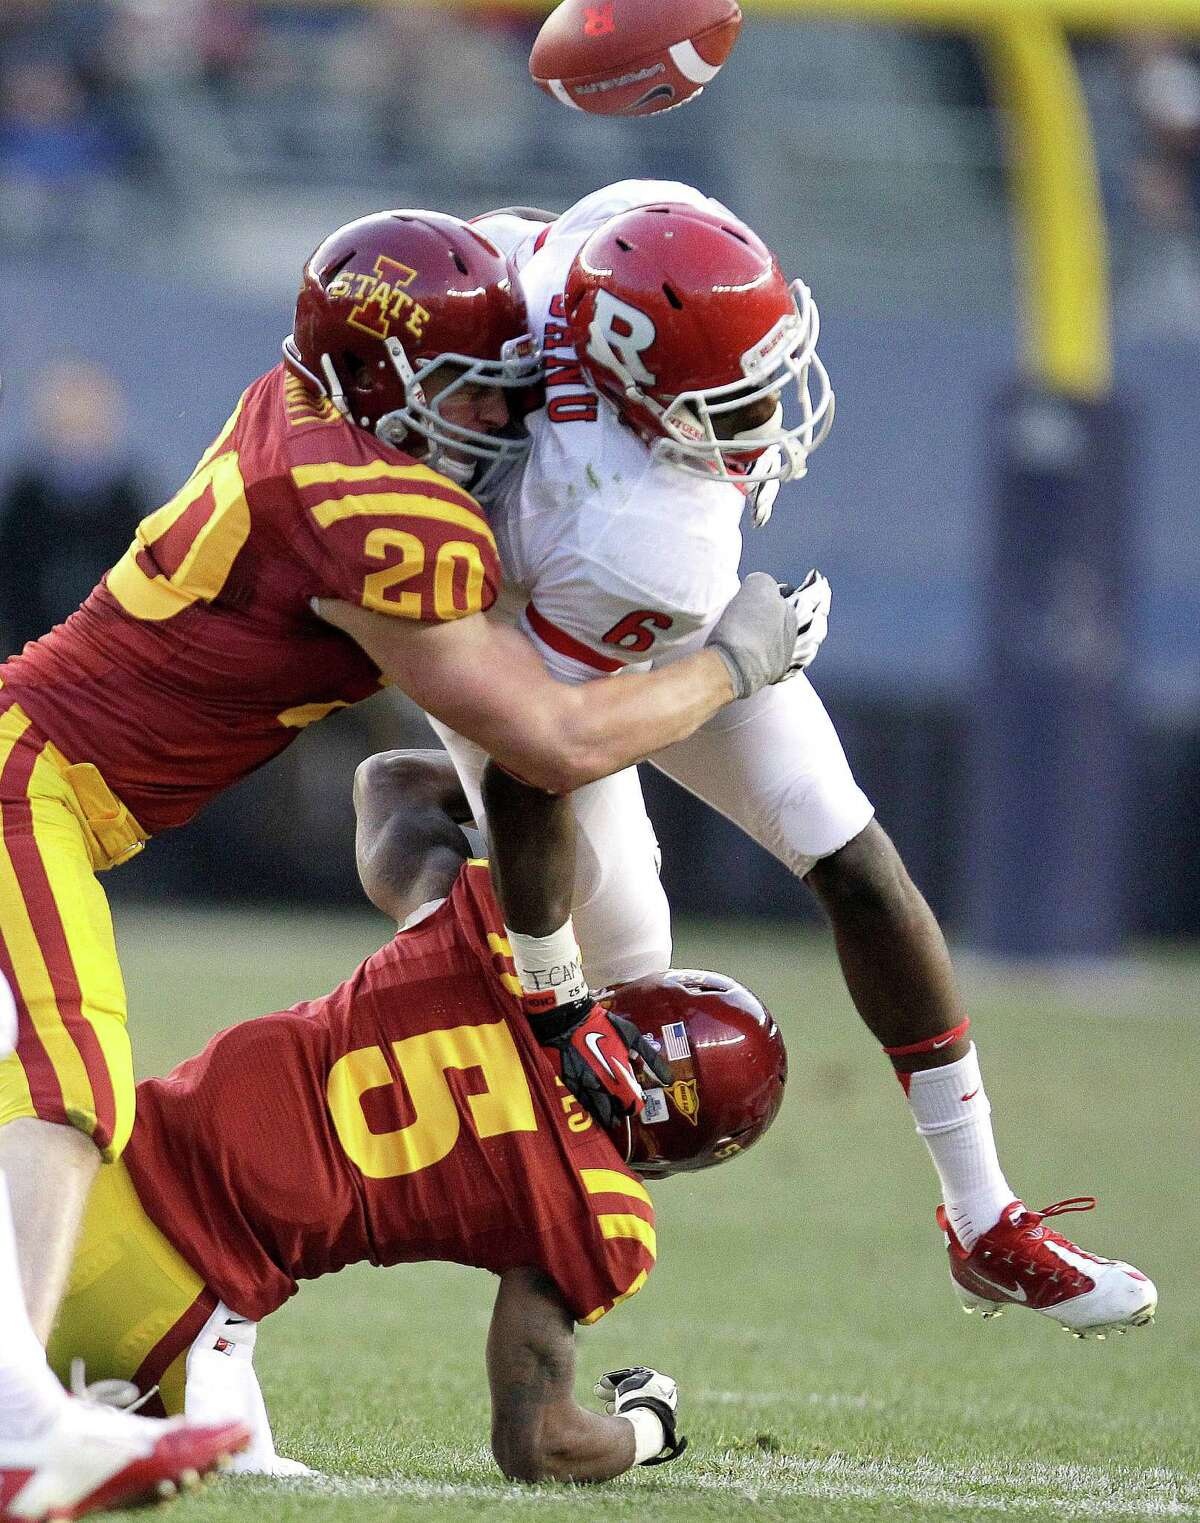 Defensive Player of the year - Jake Knott (top left), Iowa State LB: Cross-state rivals Iowa and Northern Iowa didn't think he could play college football, recruiting him for baseball. But Knott has blossomed as a senior, becoming the only Big 12 player to rank among the top 10 in tackles, tackles for losses and pass deflections. Julio Cortez/Associated Press